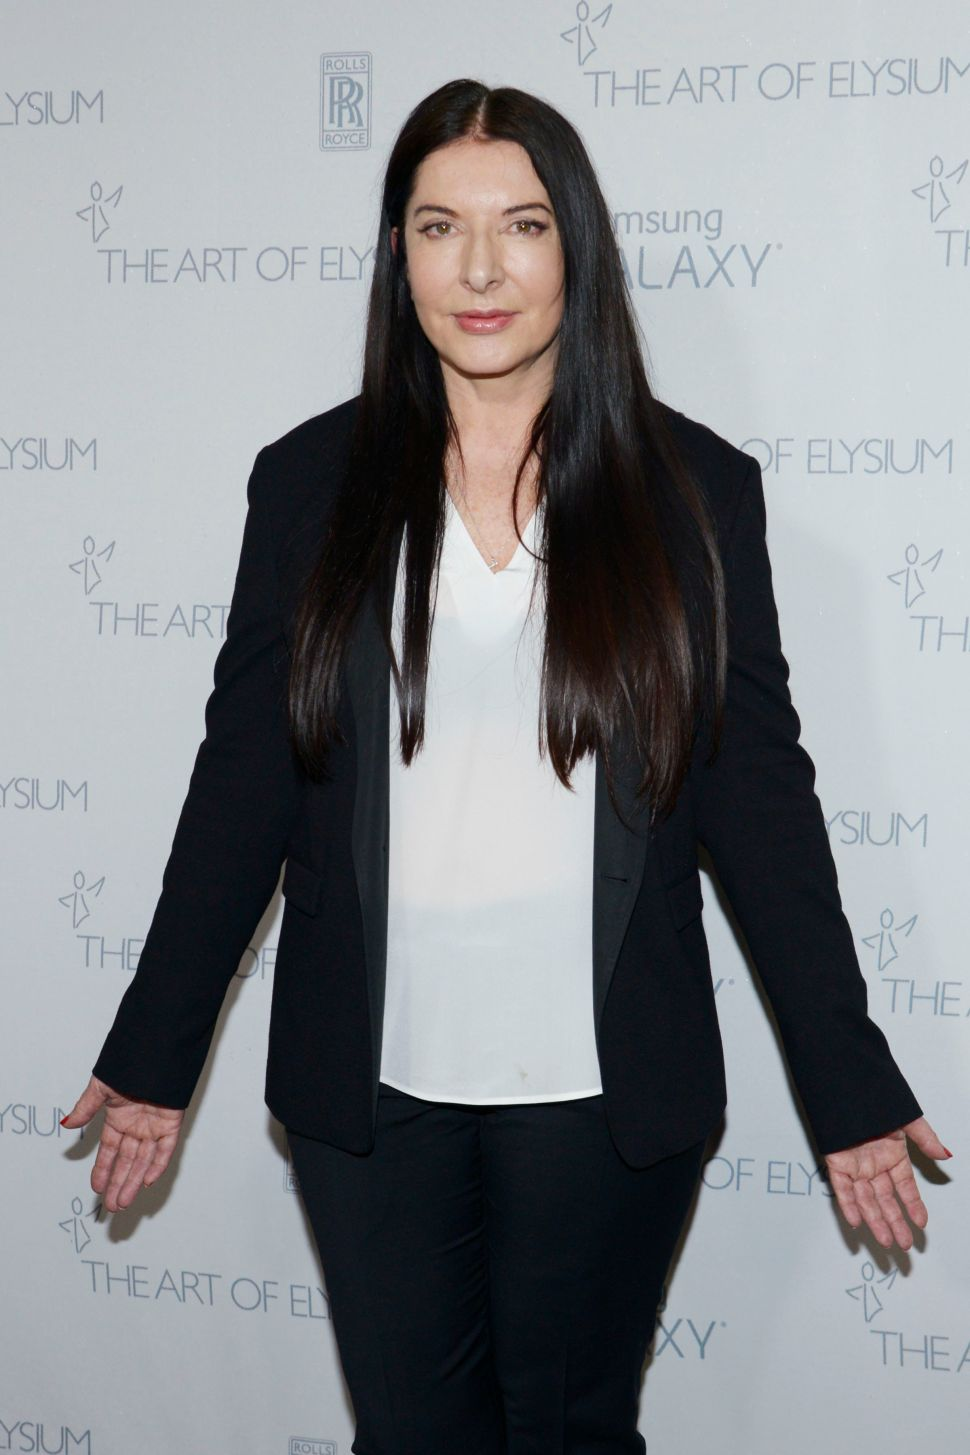 Art World Abstracts: We're Finally Getting a Memoir From Marina Abramovic, and More!